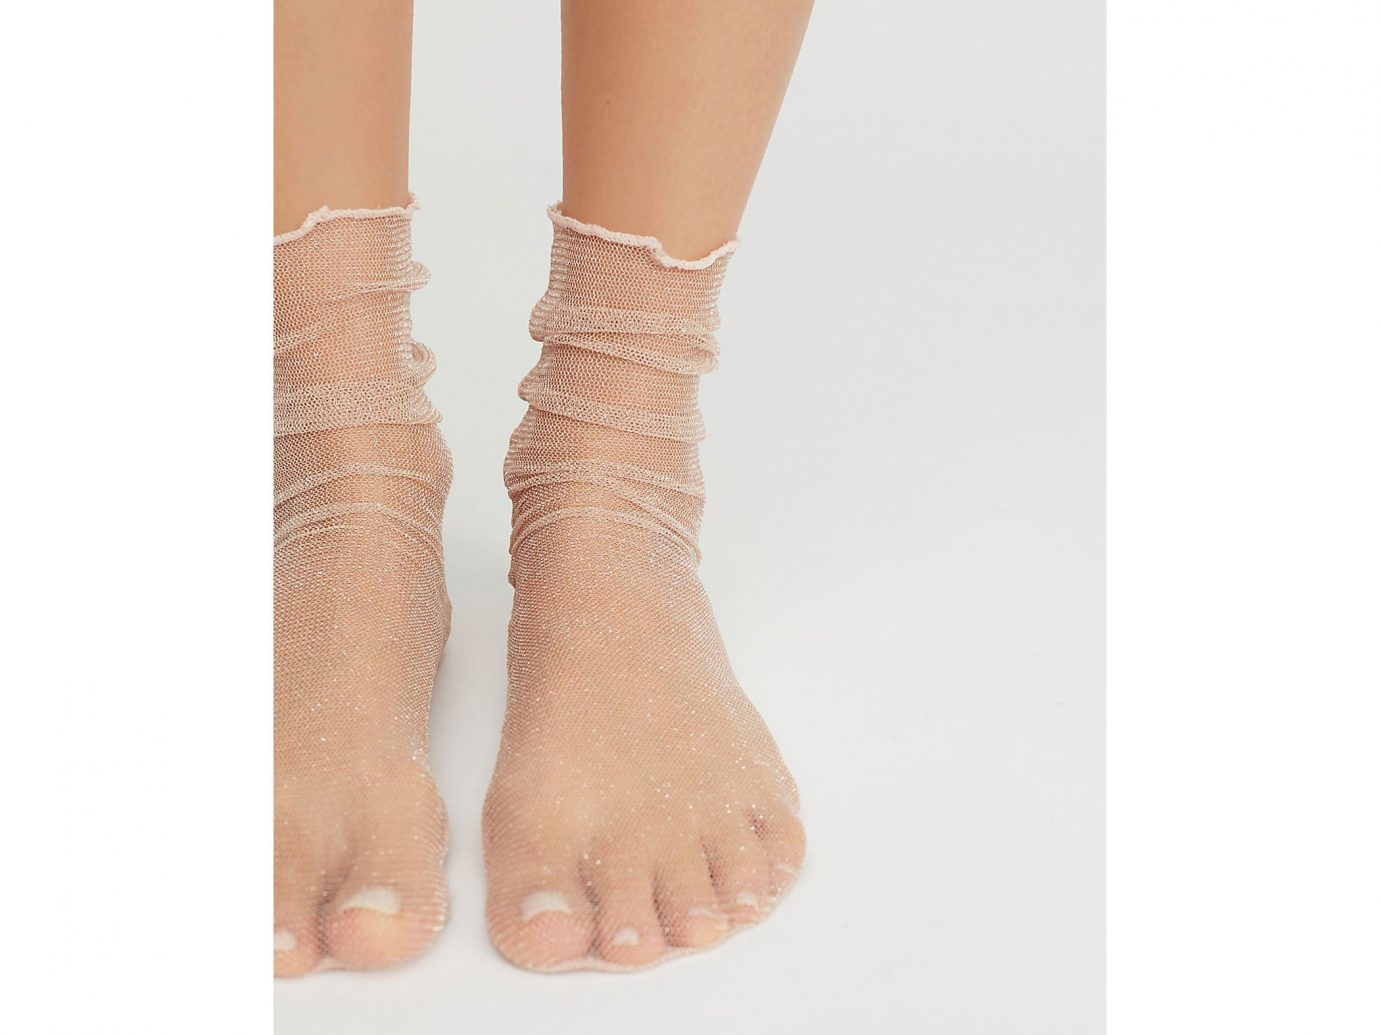 Travel Shop Travel Trends joint human leg ankle leg foot bandage arm hand toe finger barefoot shoe beige accessory